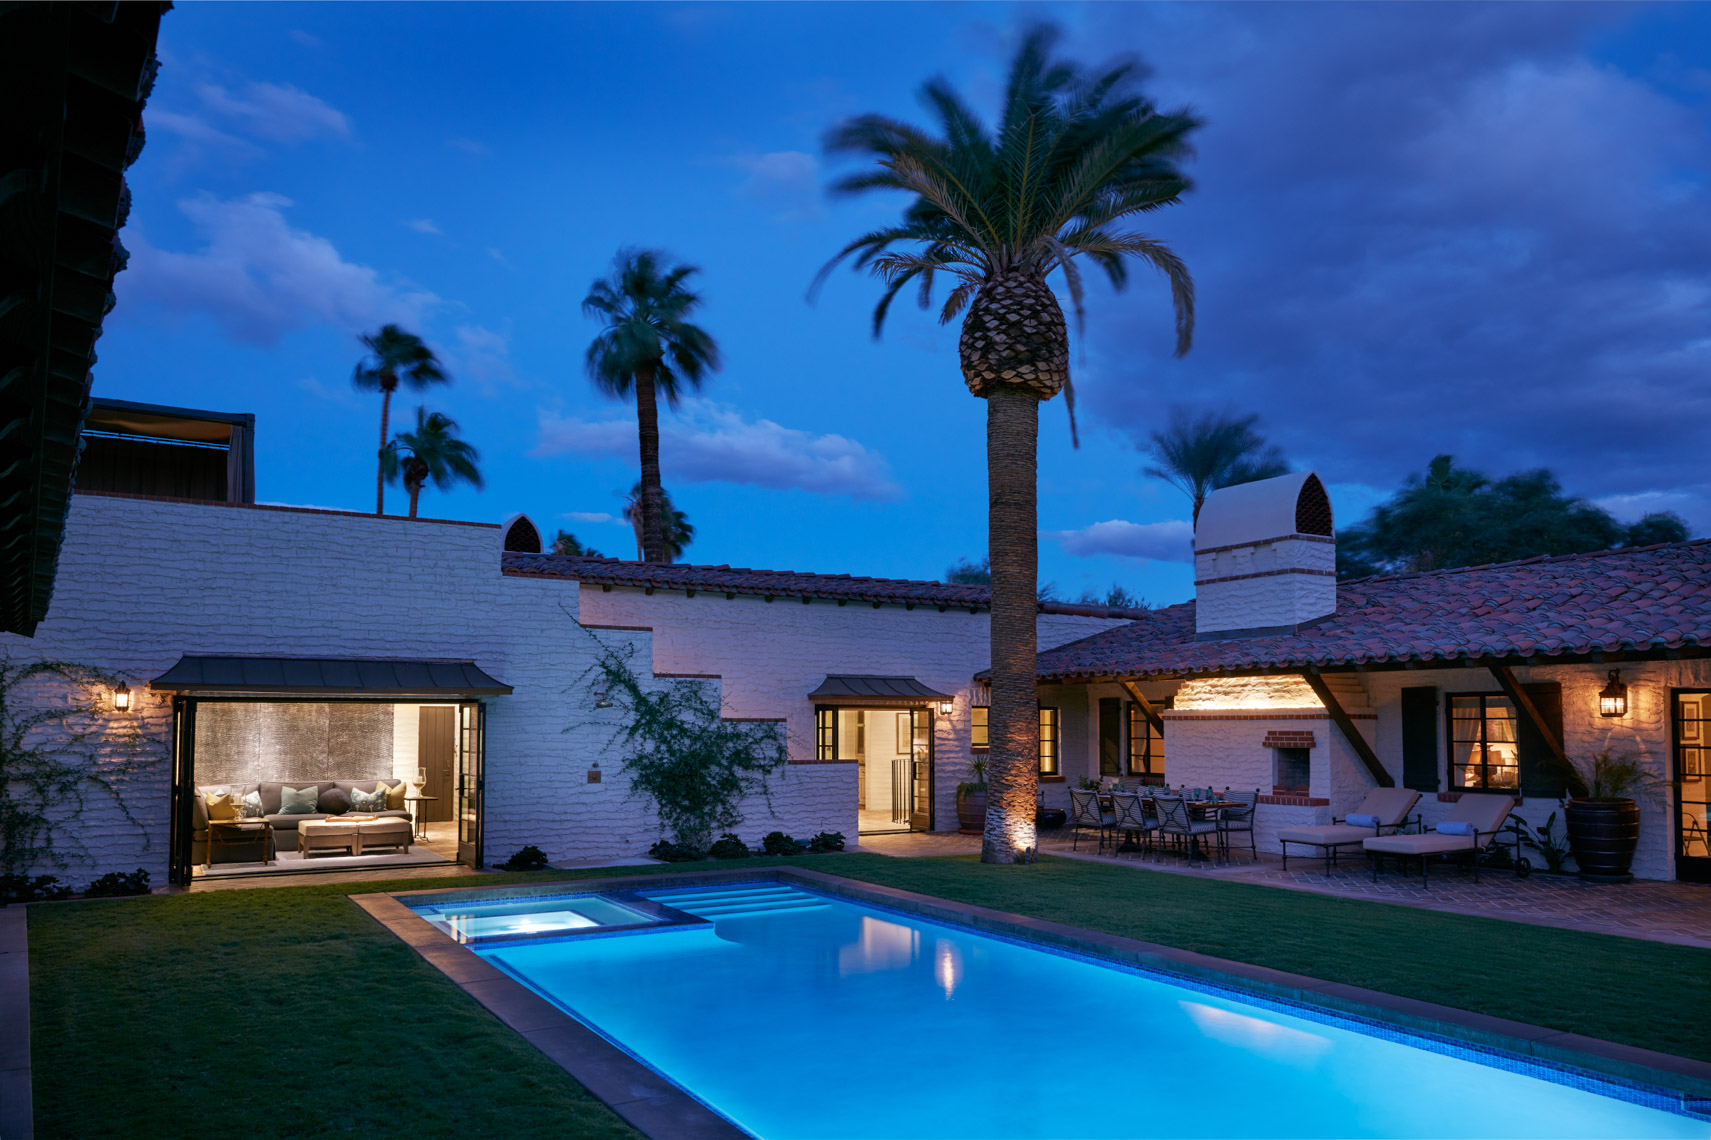 Blue pool at dusk with palm trees and courtyard San Francisco architectural photographer